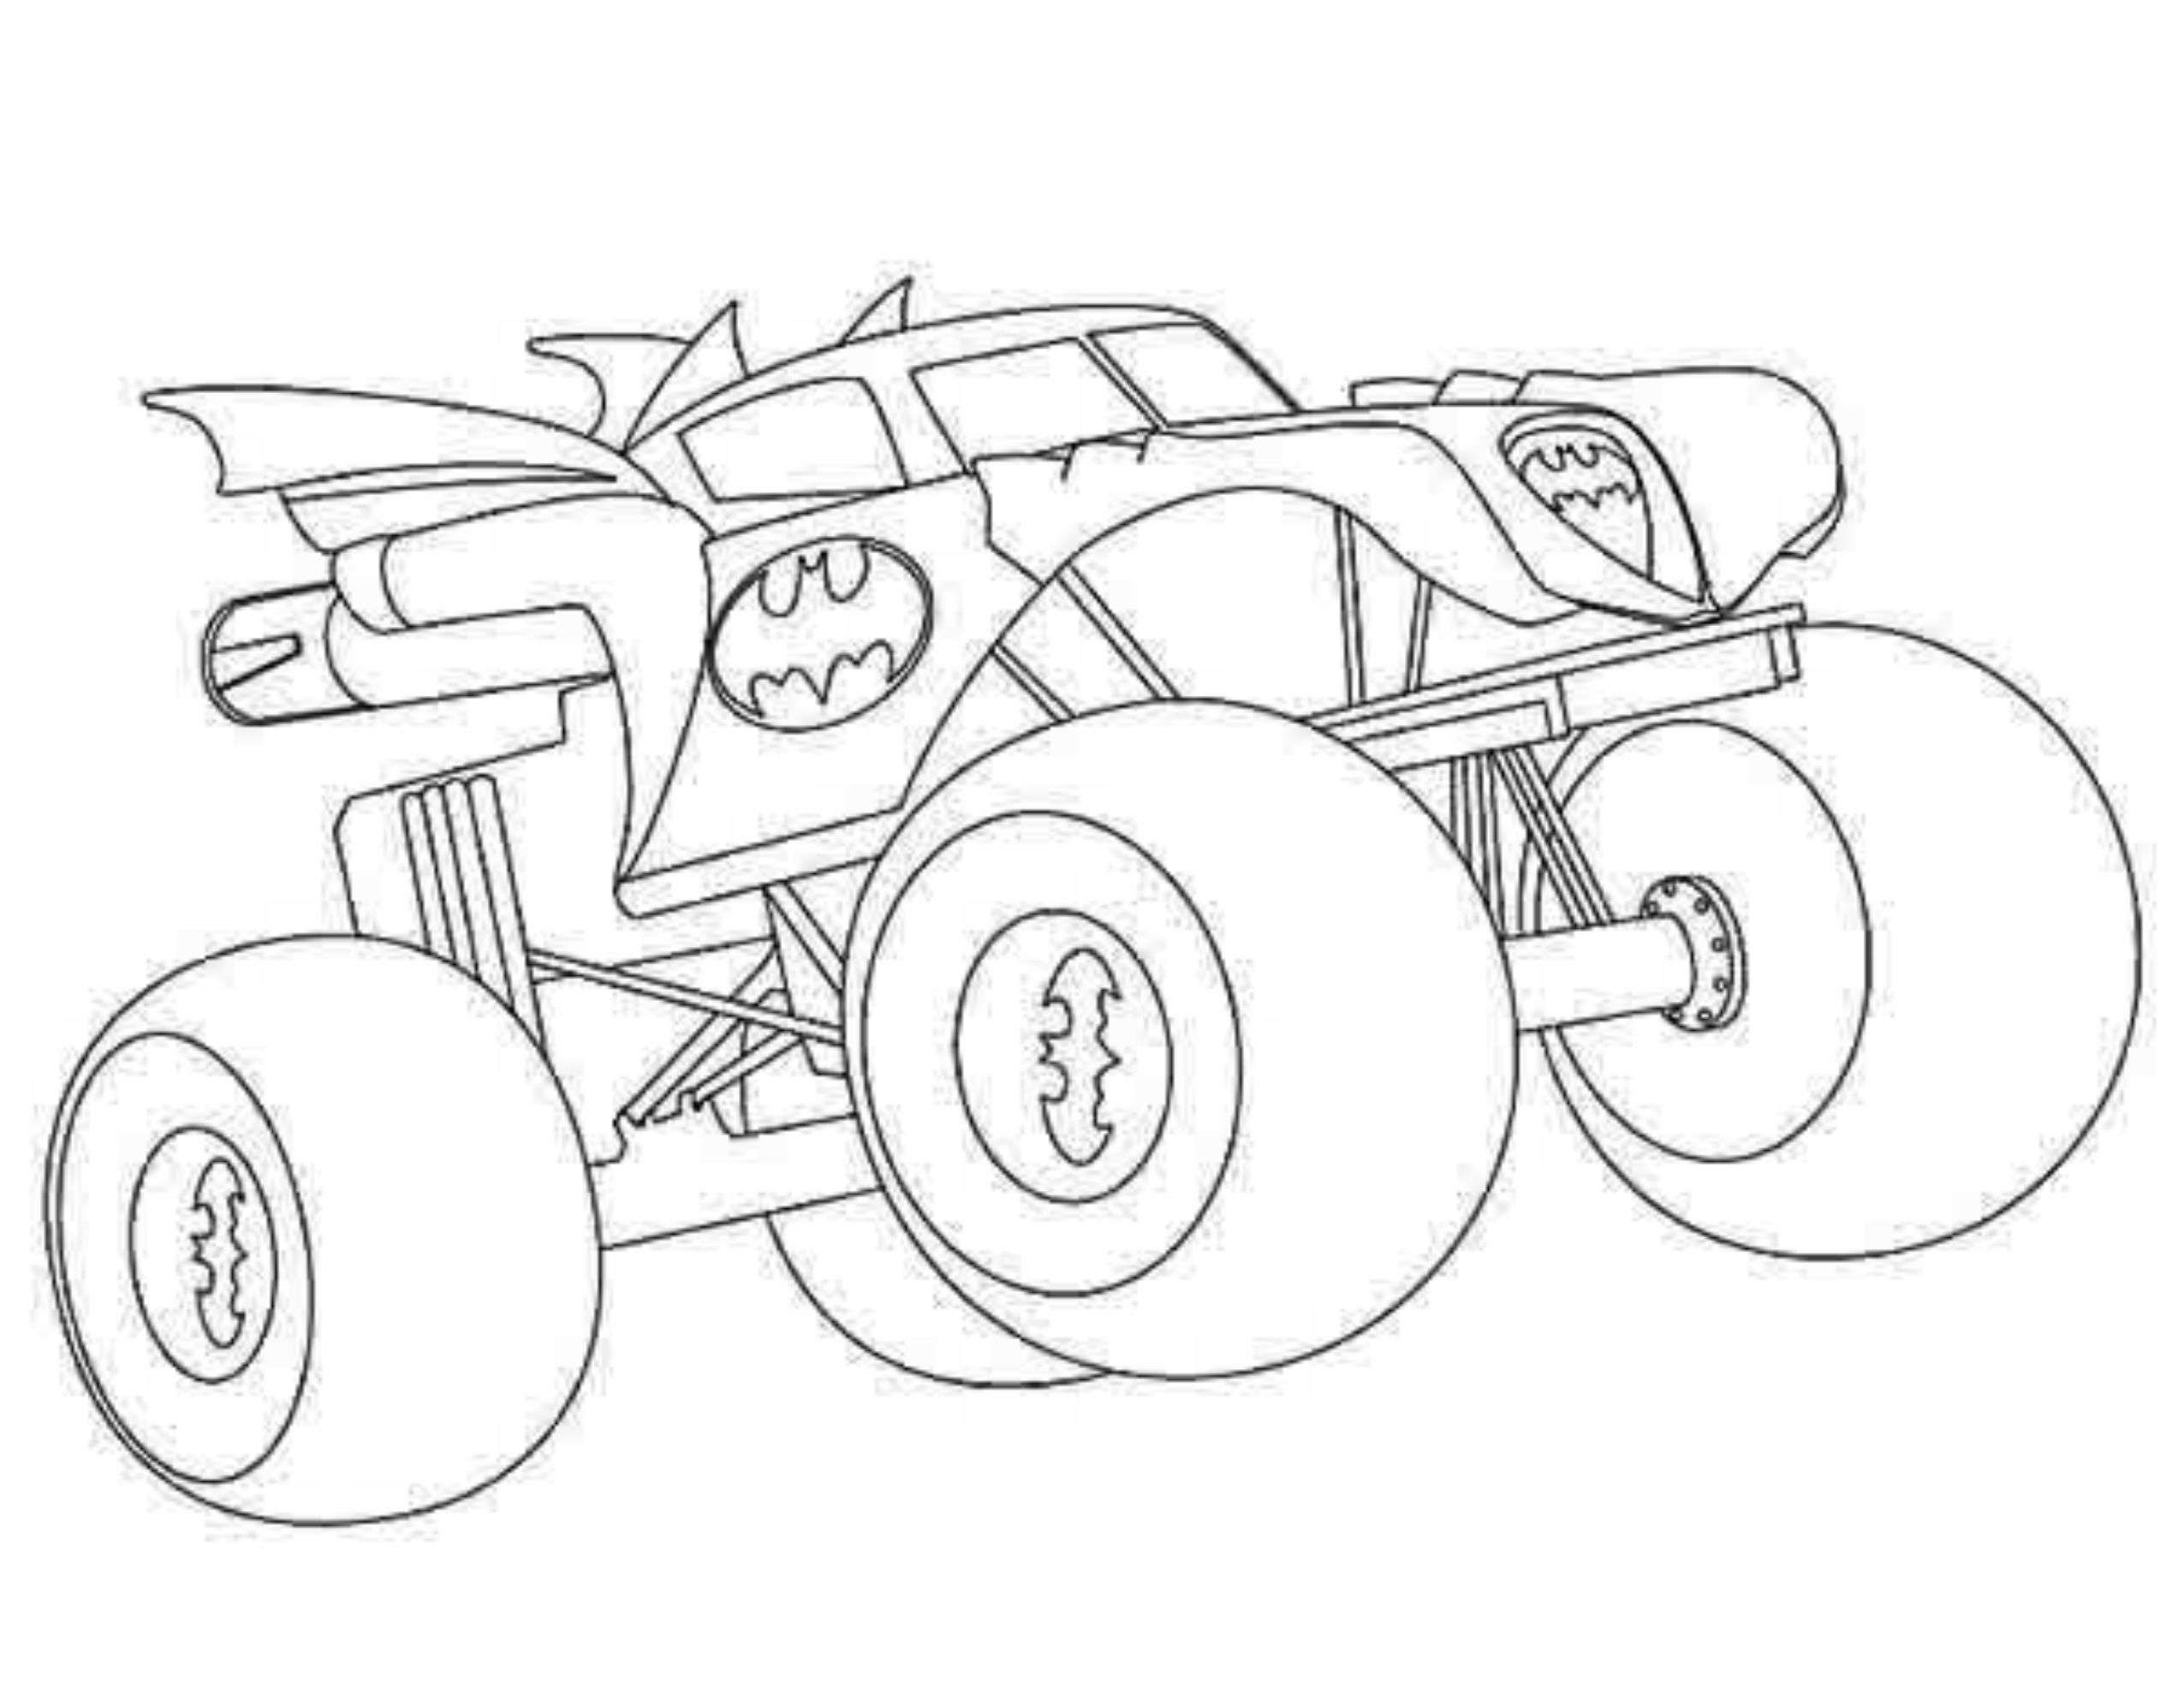 Monster Truck Coloring Pages Free Printable Monster Truck Coloring Pages For Kids .